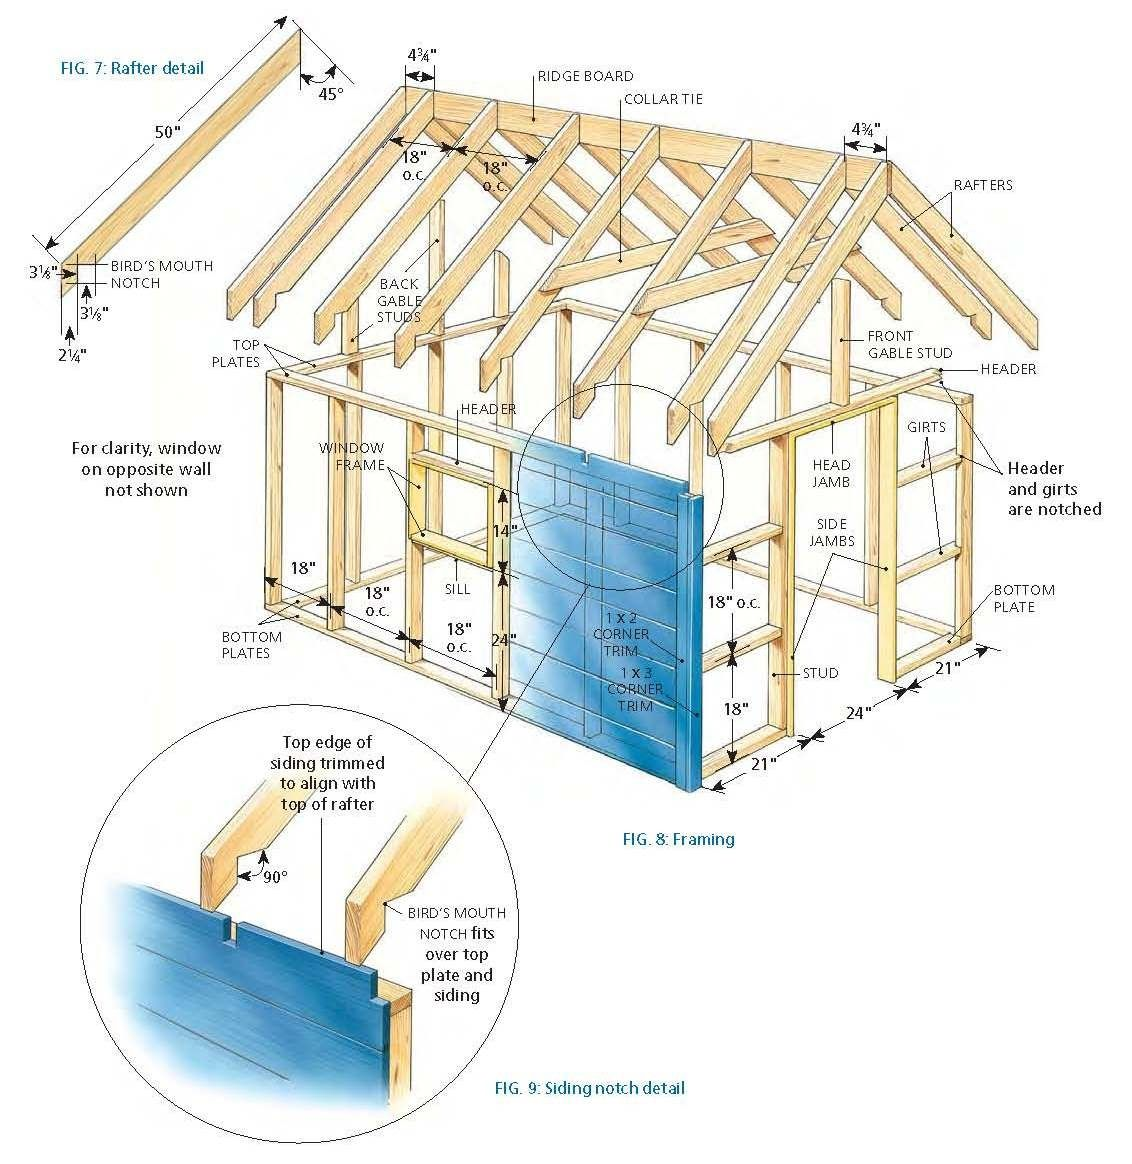 treehouse floor plans free tree house building plans floor plans - Tree House Plans Metal Crate